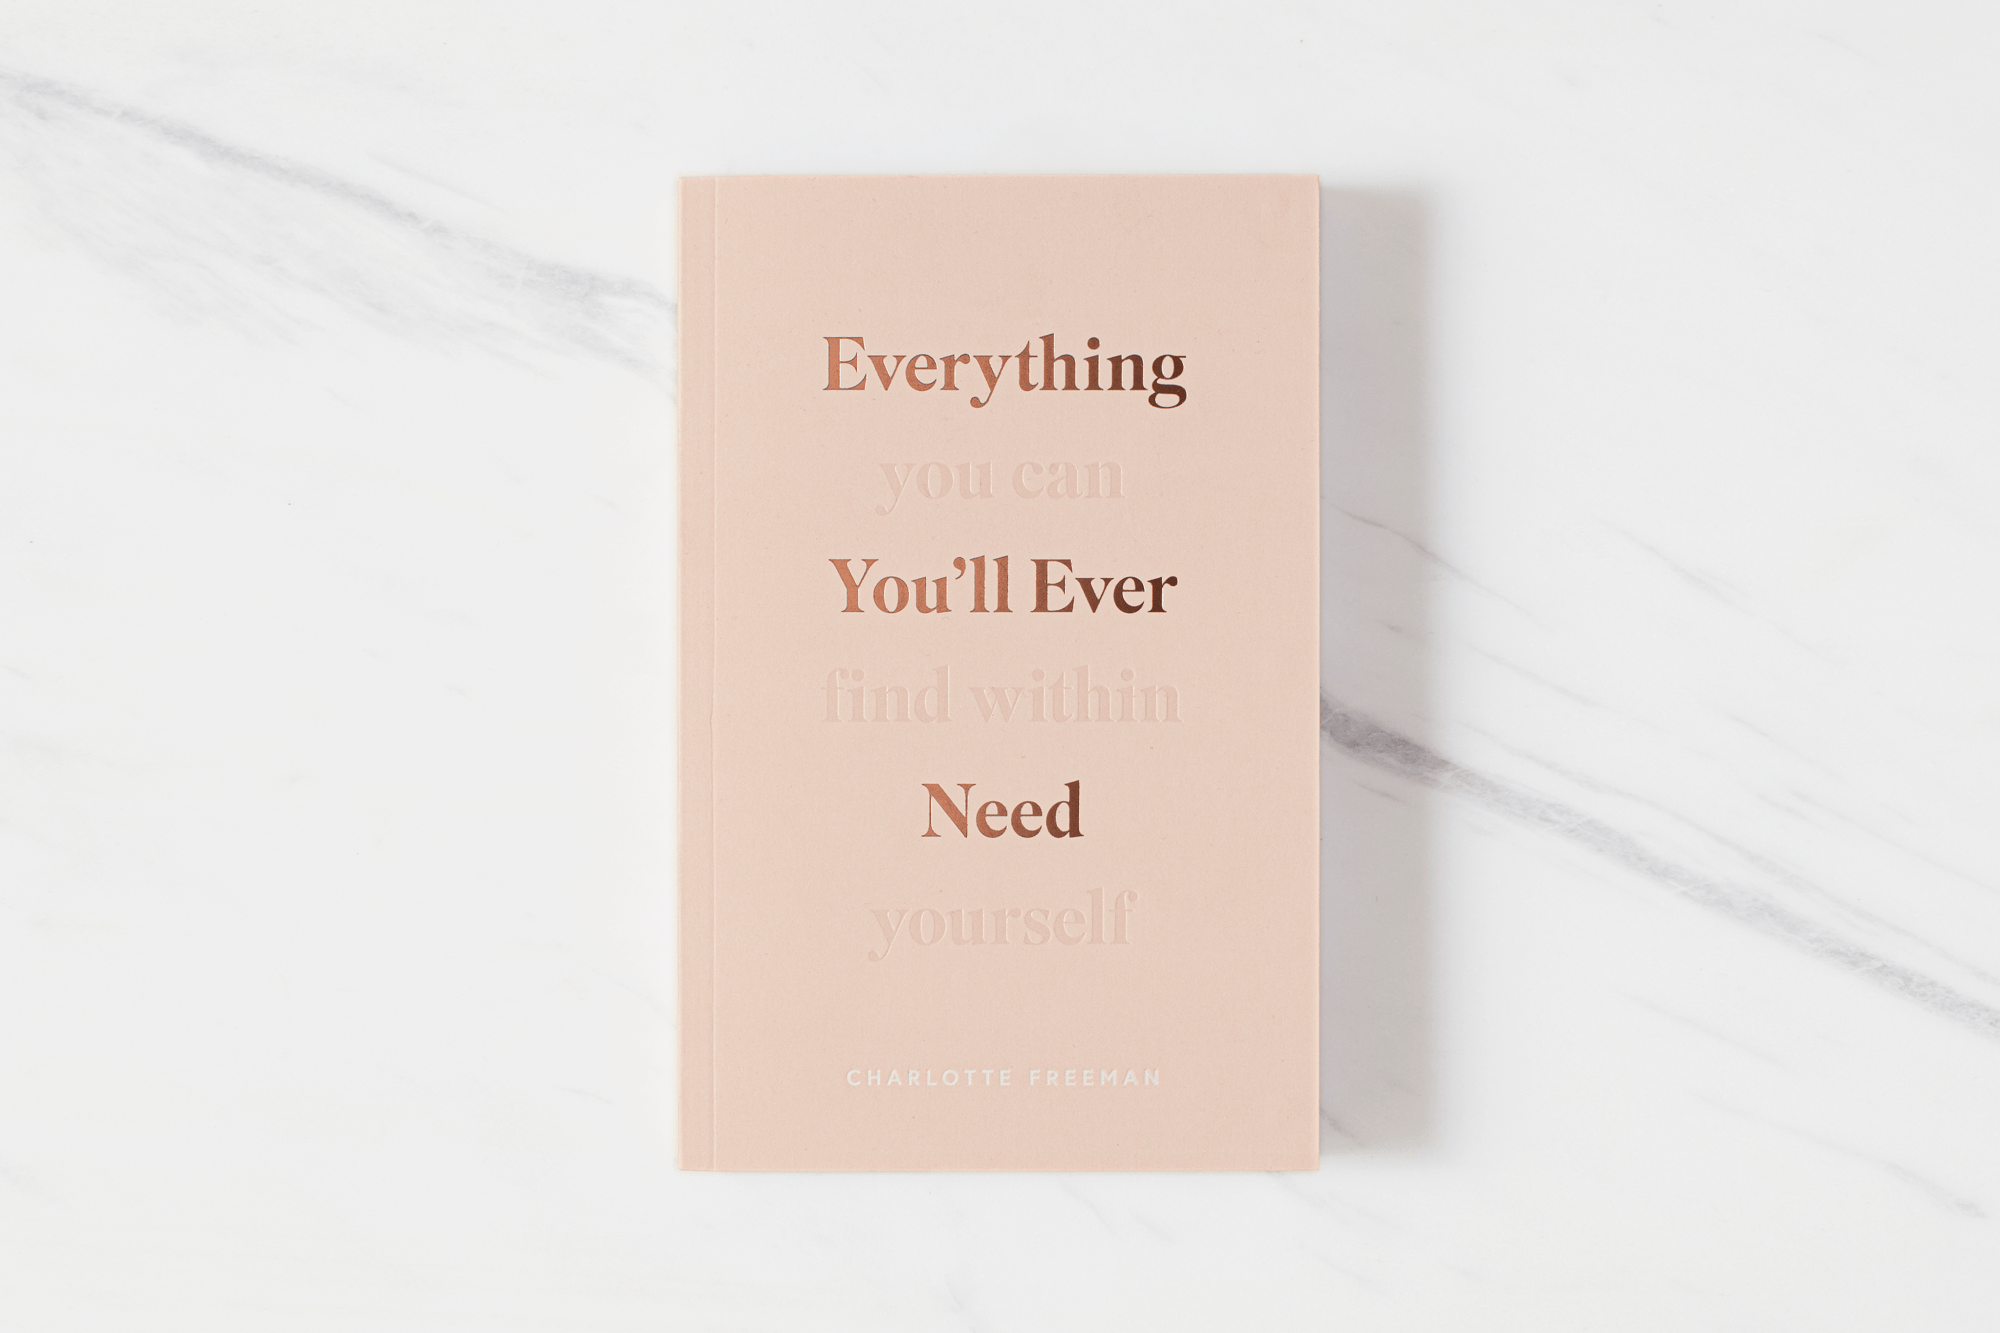 Thought Catalog - Everything You'll Ever Need, You Can Find Within Yourself - BOOK - Thought Catalog - MOD&SOUL